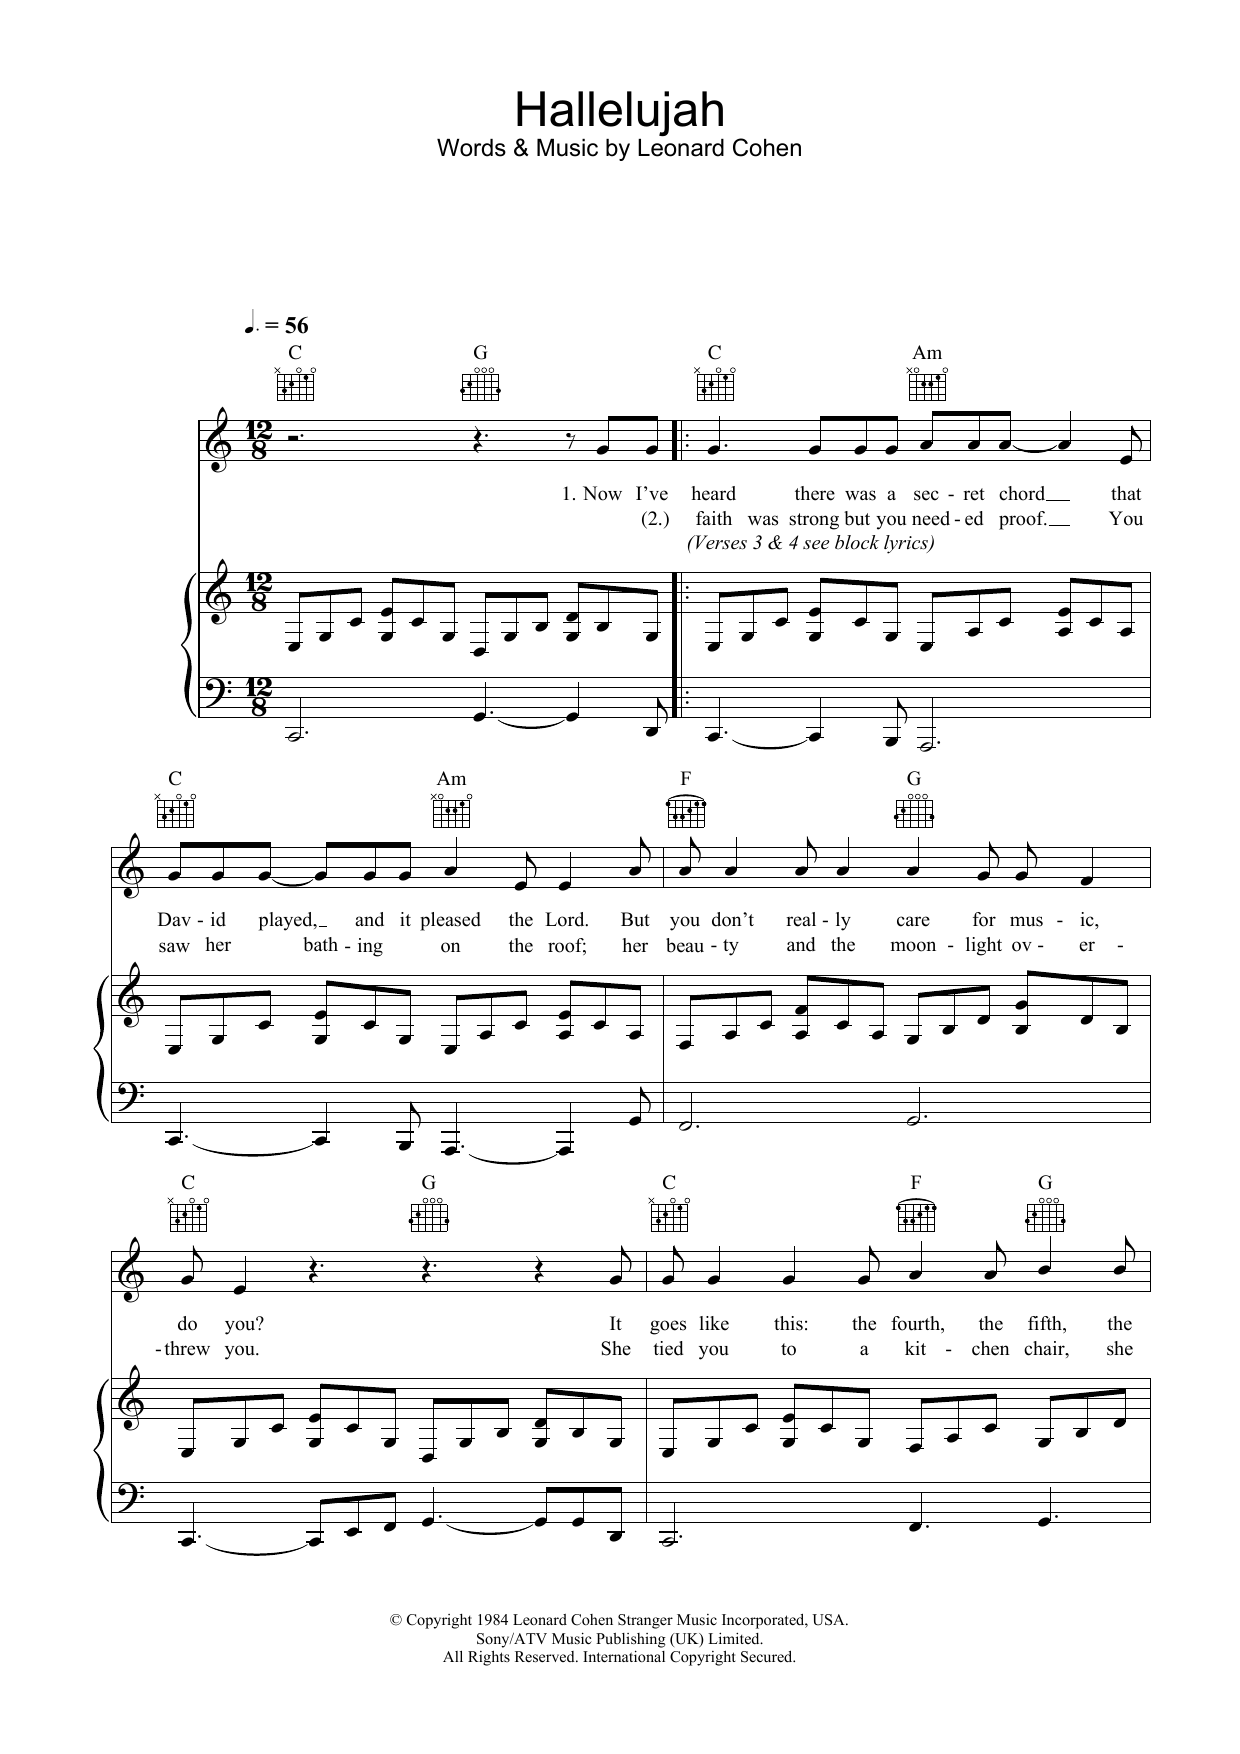 graphic regarding Hallelujah Piano Sheet Music Free Printable identified as Hallelujah